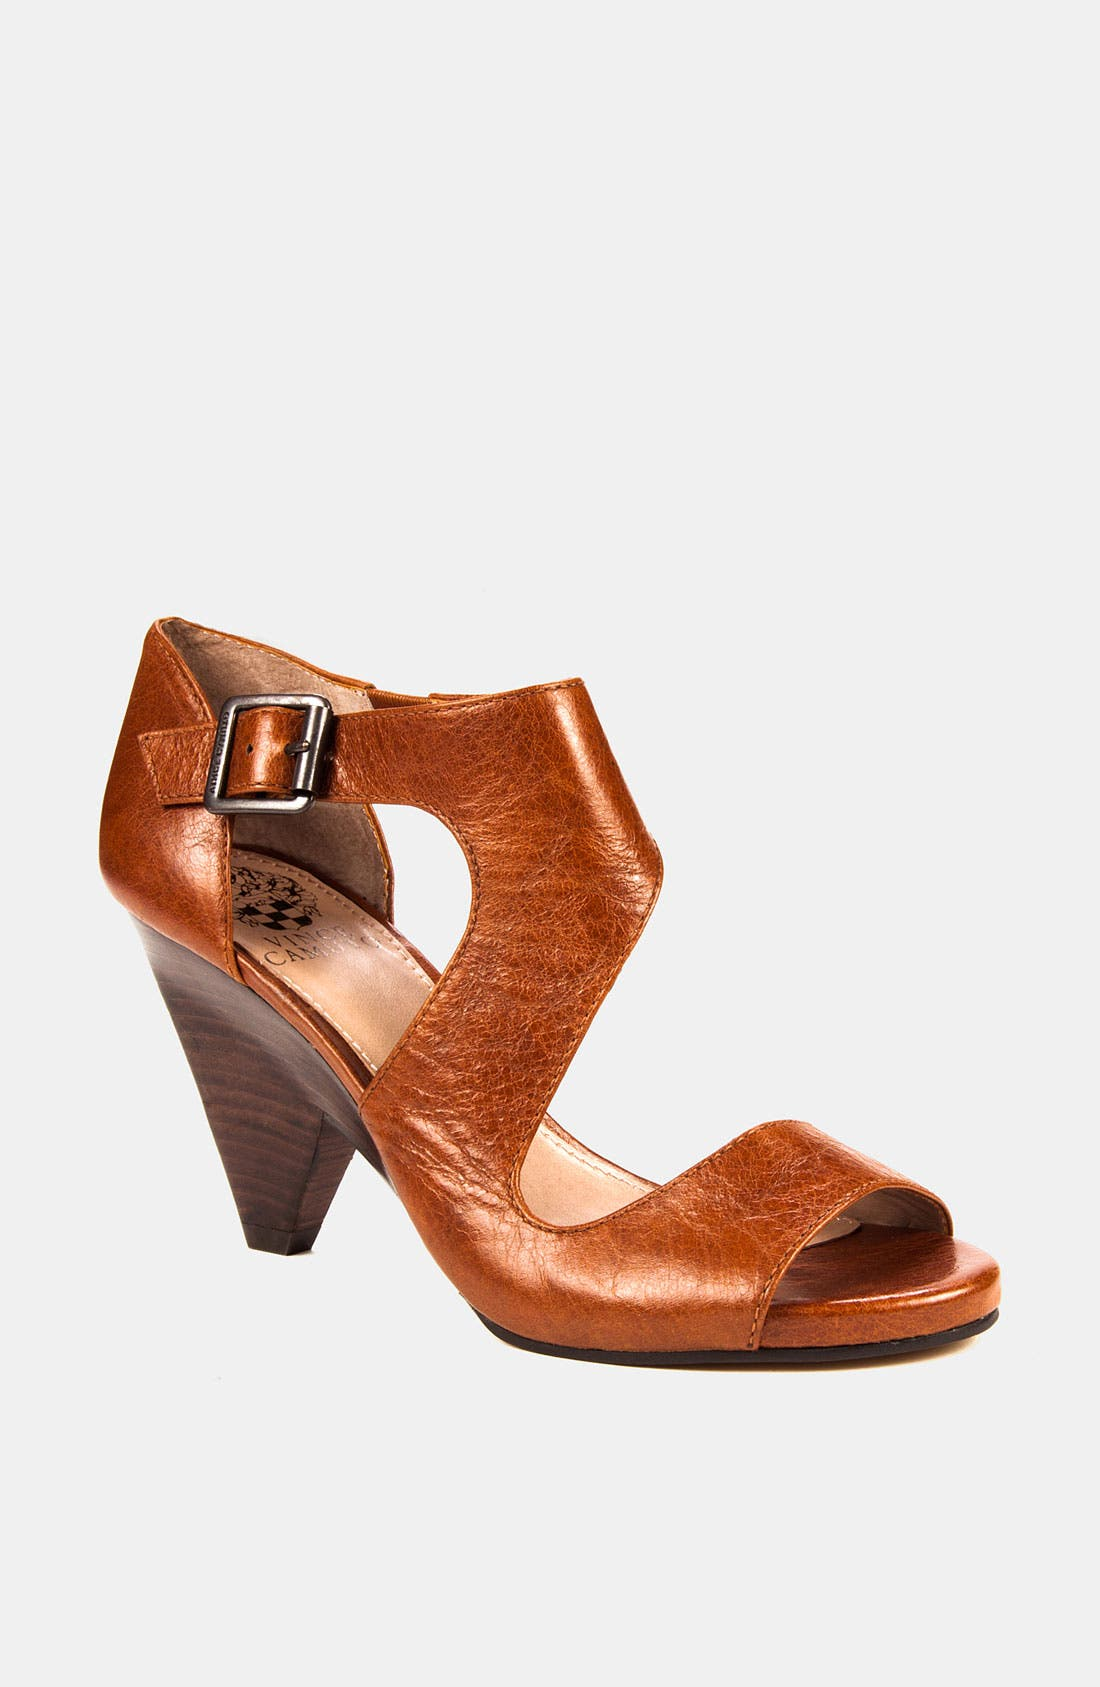 Alternate Image 1 Selected - Vince Camuto 'Pacley' Sandal